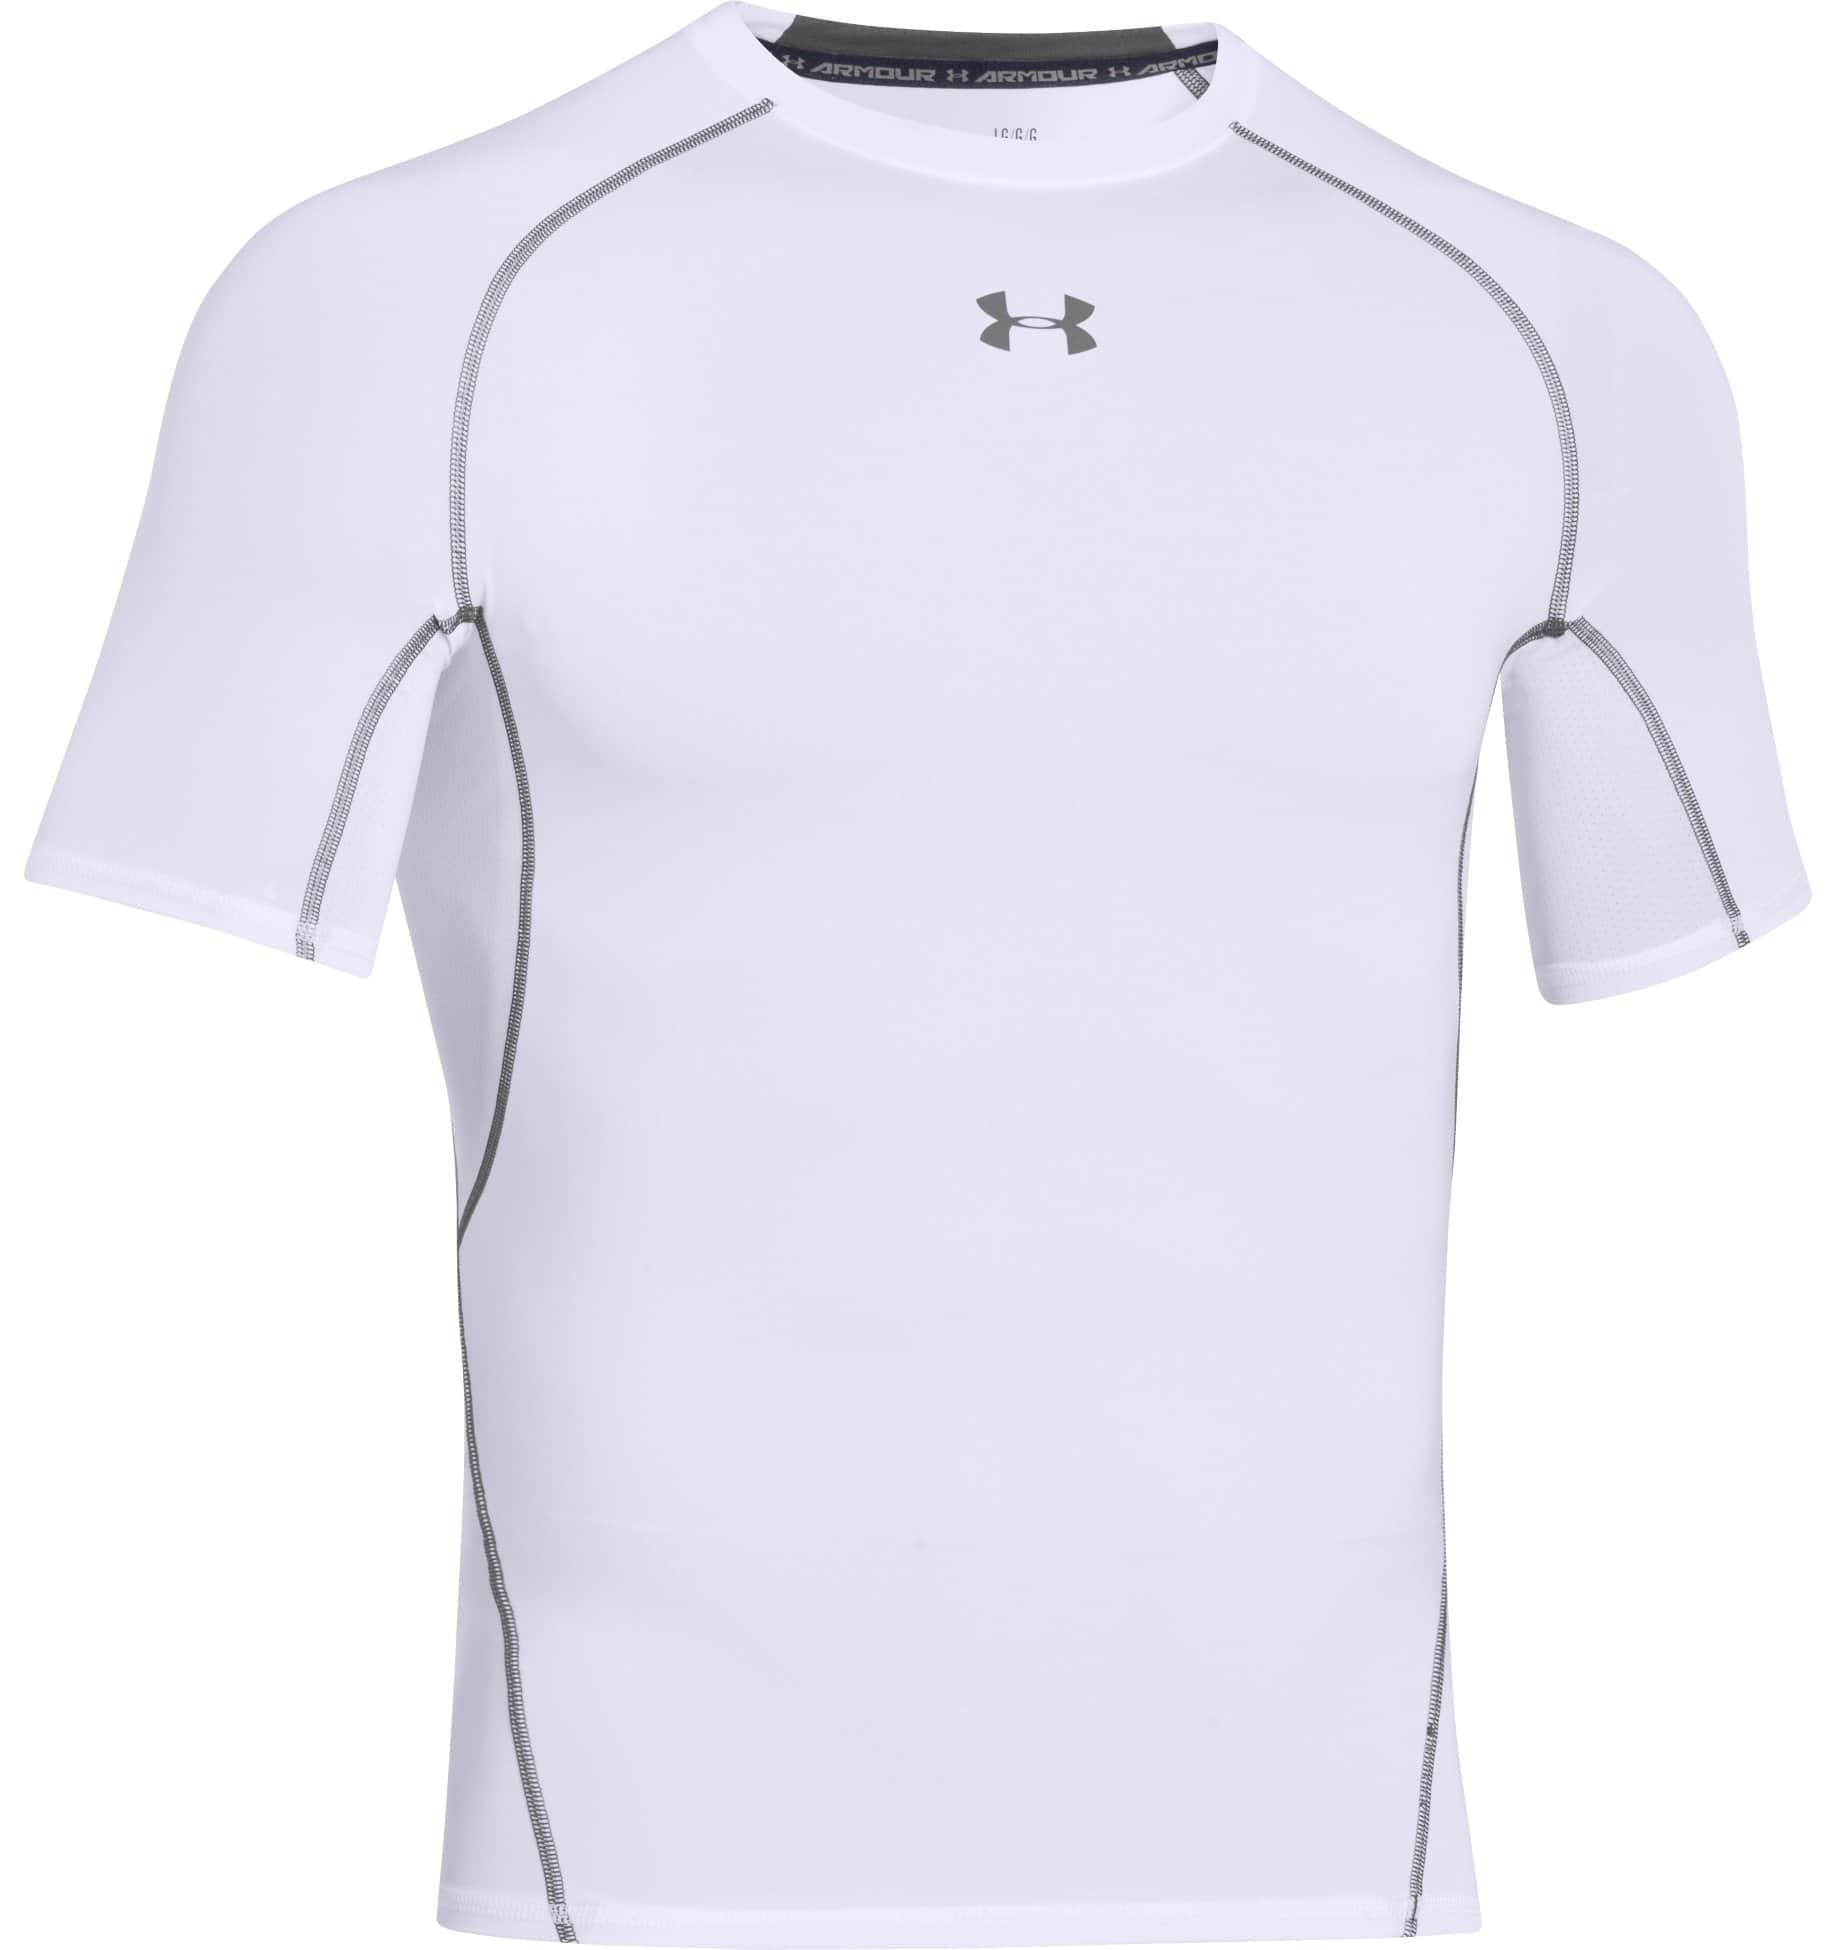 Under Armour:  Mens Compression Shirt 2 for $30 plus Free Shipping